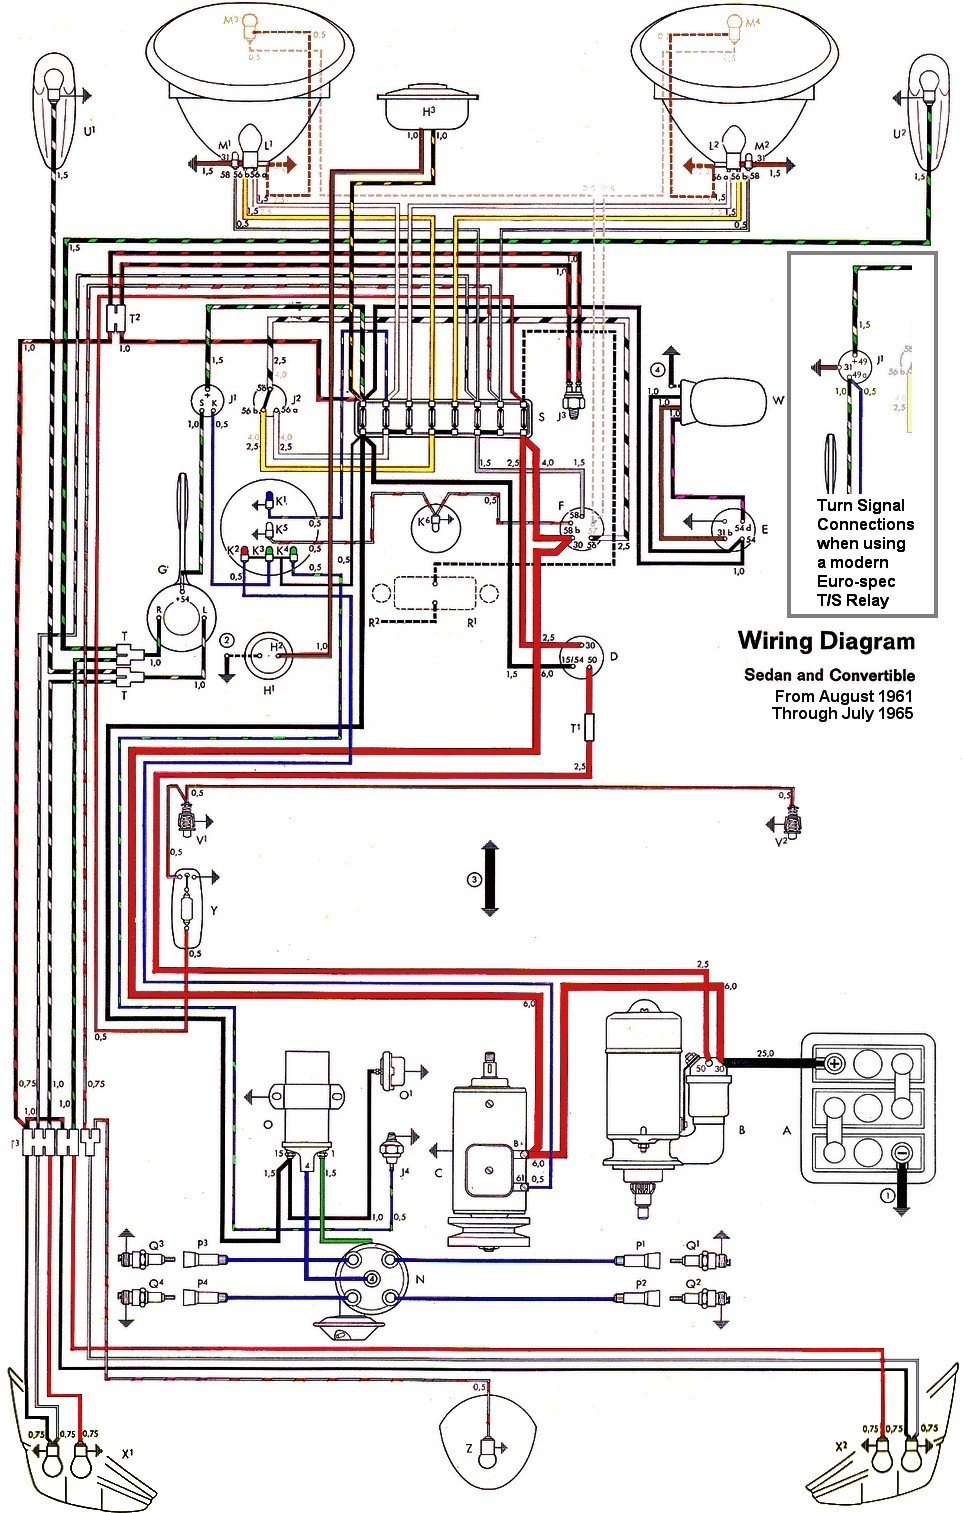 bug_62 65withinset wiring diagram vw beetle sedan and convertible 1961 1965 vw 1971 vw bus wiring diagram at aneh.co